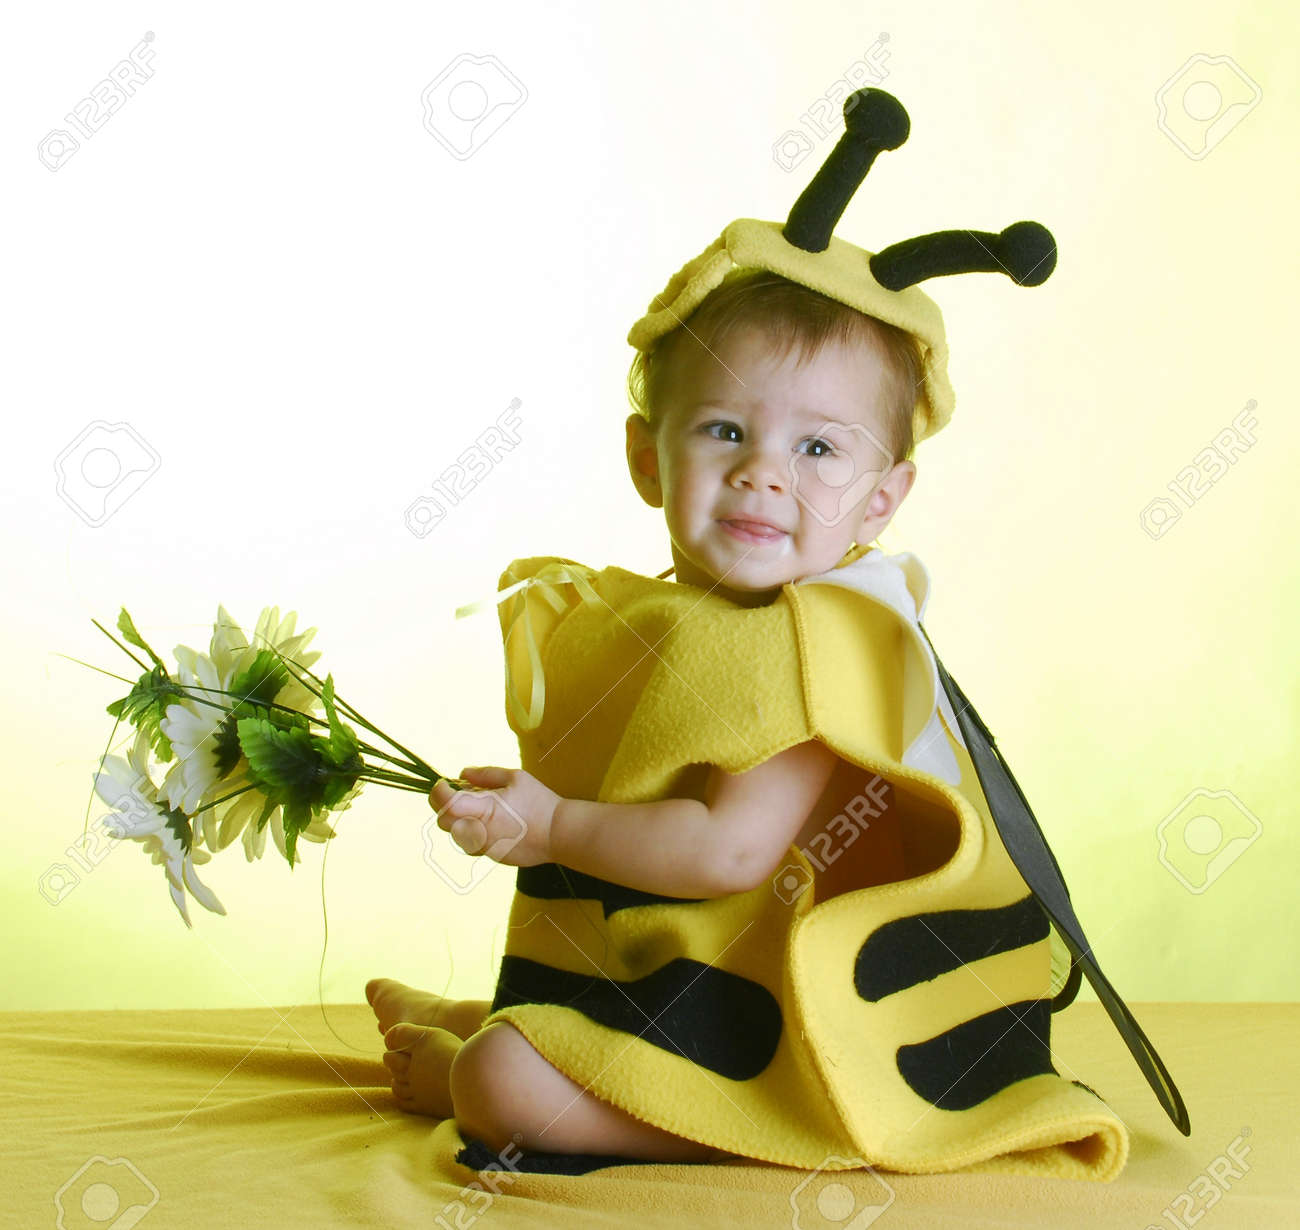 cute baby wearing bee costume on yellow background Stock Photo - 7825259